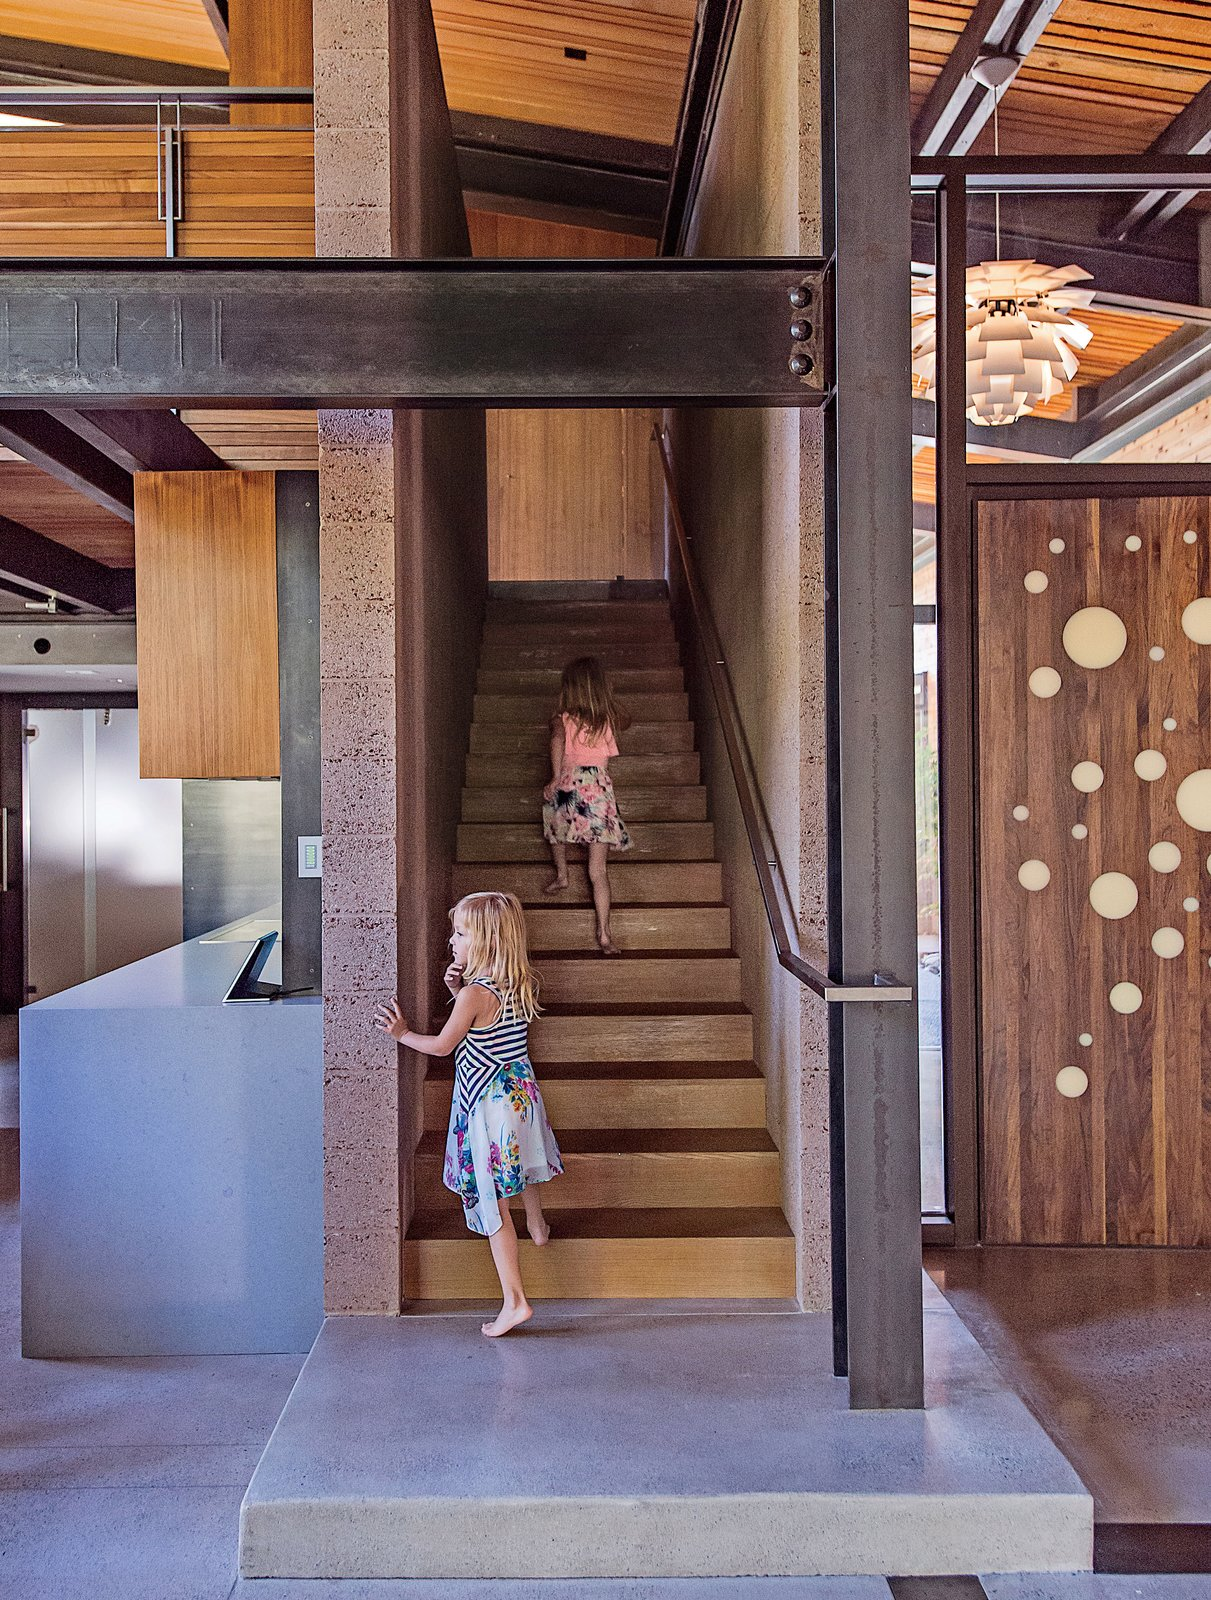 Staircase, Metal Railing, and Wood Tread The entrance is highlighted by a custom walnut door designed by the architect, Jack Hawkins. Cheryl Chenault designed the interiors.  Best Photos from A Forest Sanctuary Designed to Support Autistic Triplets, Their Parents, and a Host of Caregivers